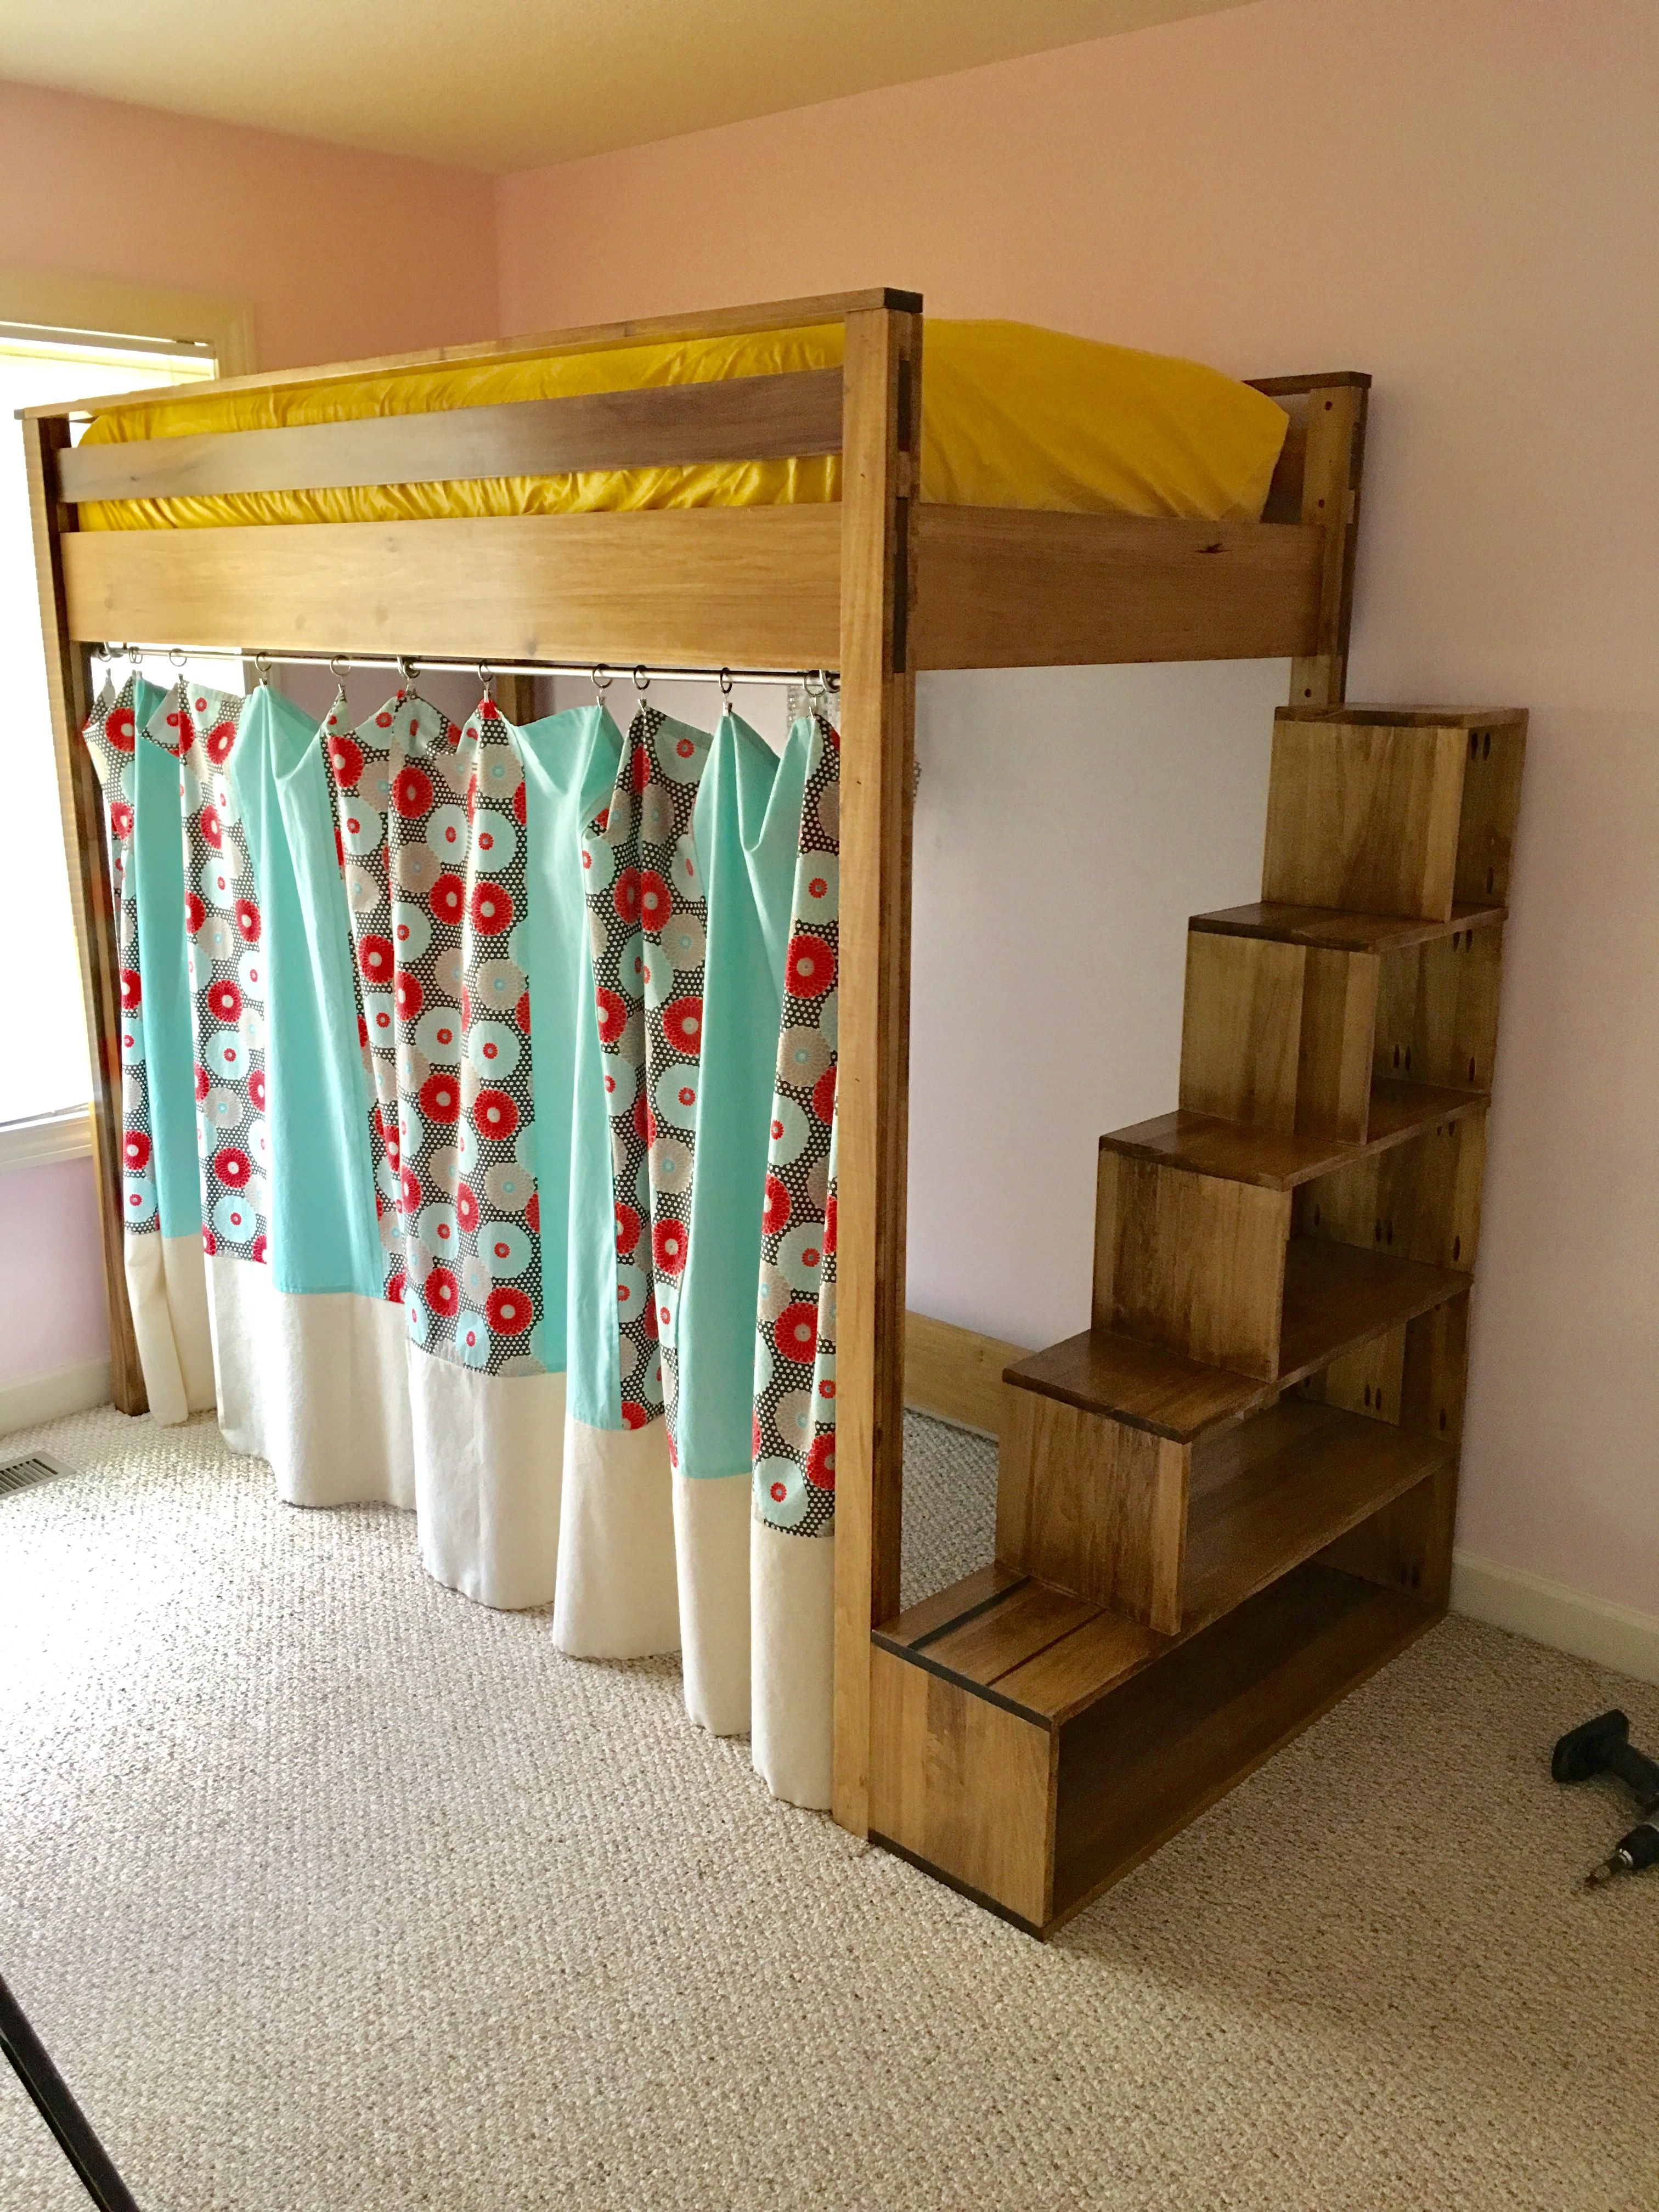 Building A Bunk Bed With Stairs Storage Stairs For Loft Bed Diy Chloe 39s Room Pinterest